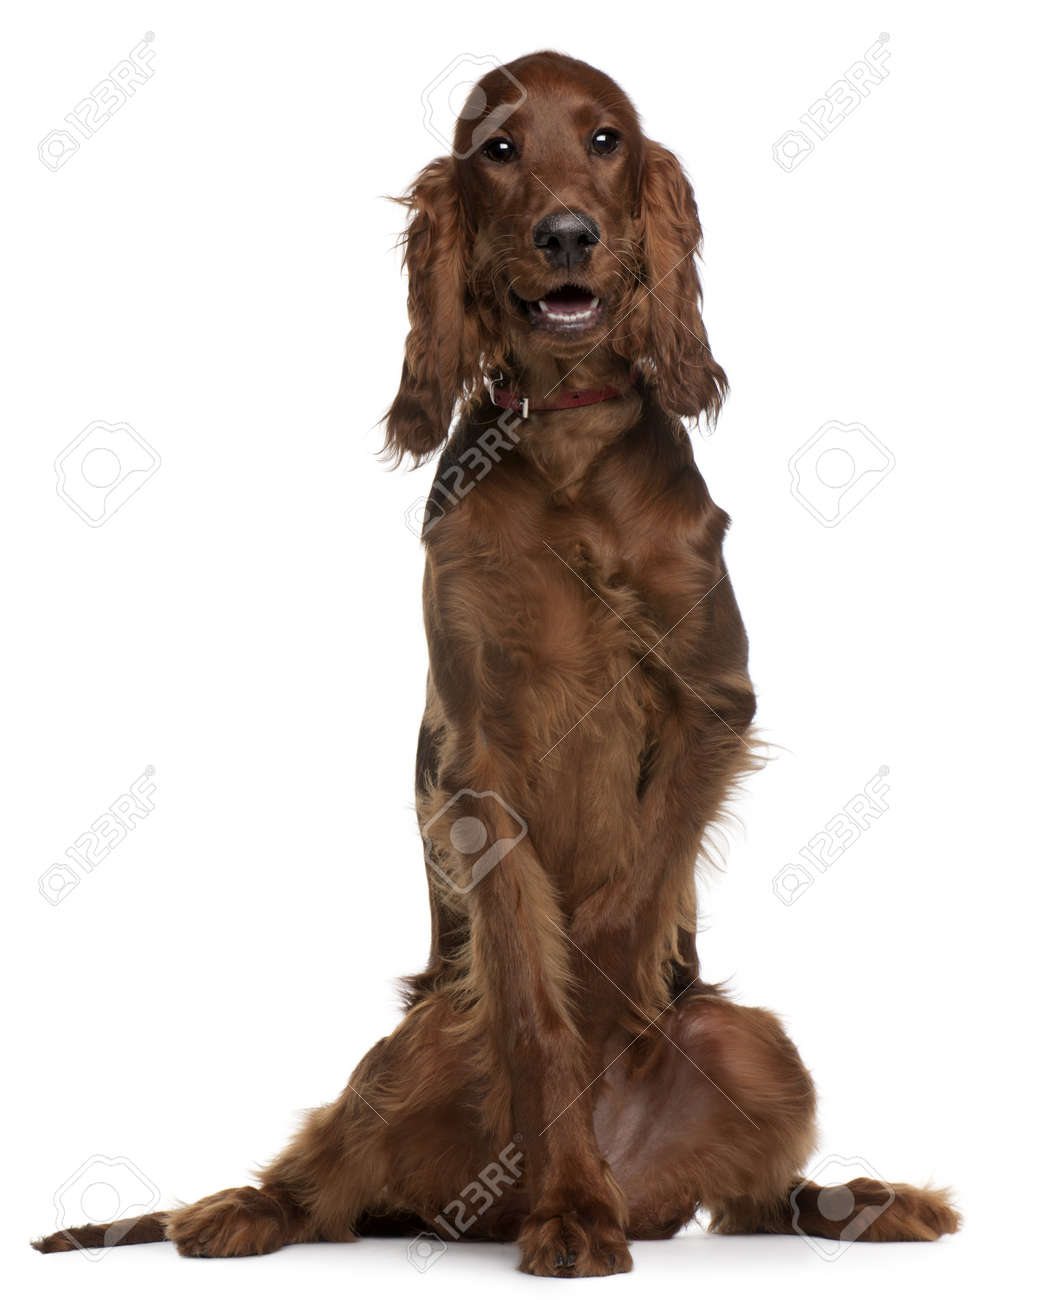 Irish Setter puppy, 5 months old, sitting in front of white background Stock Photo - 8210675